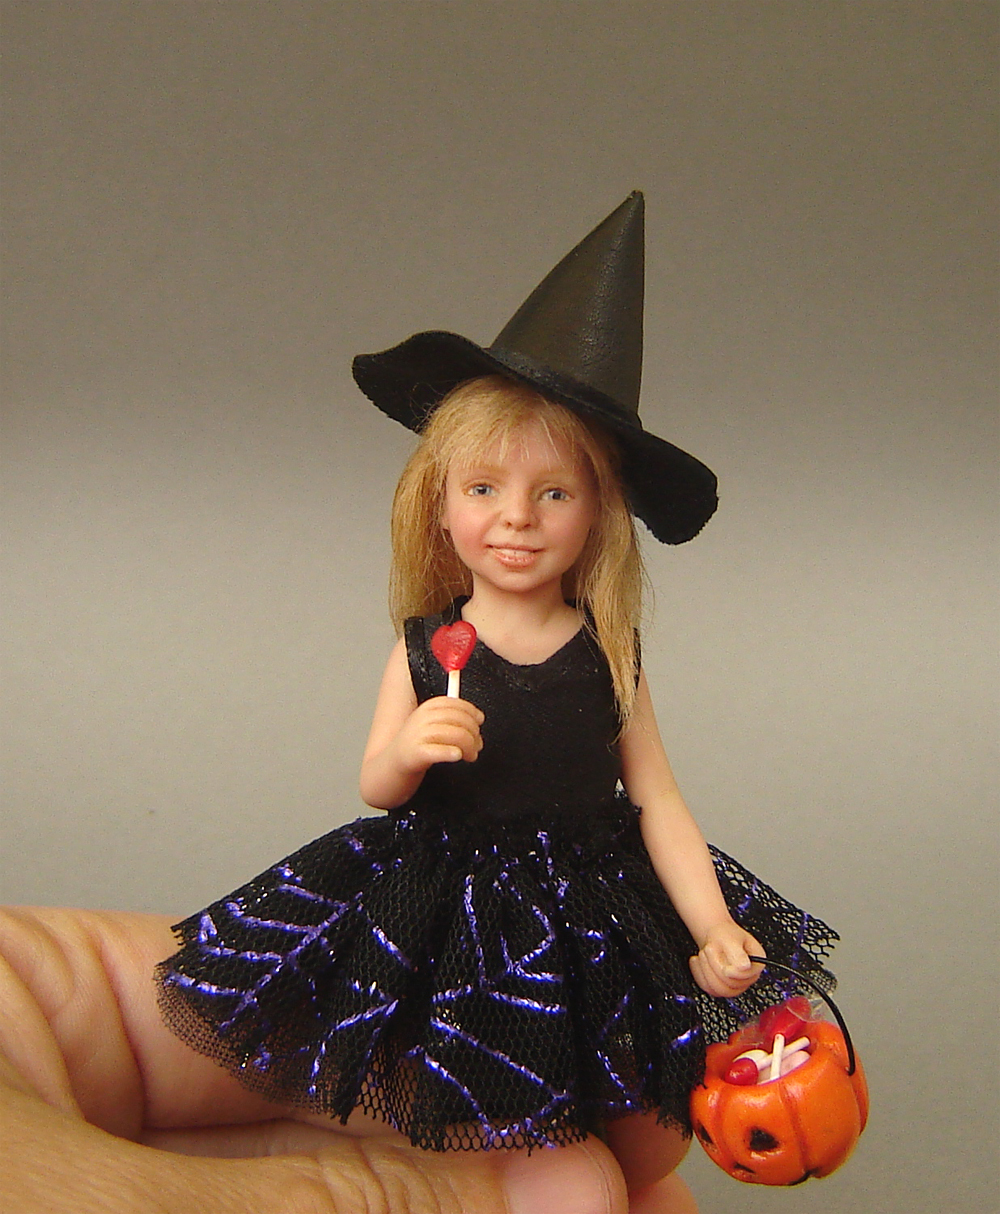 ooak 1:12 scale doll witch anastasia in polymer clay for dollhouse diorama roombox collector item